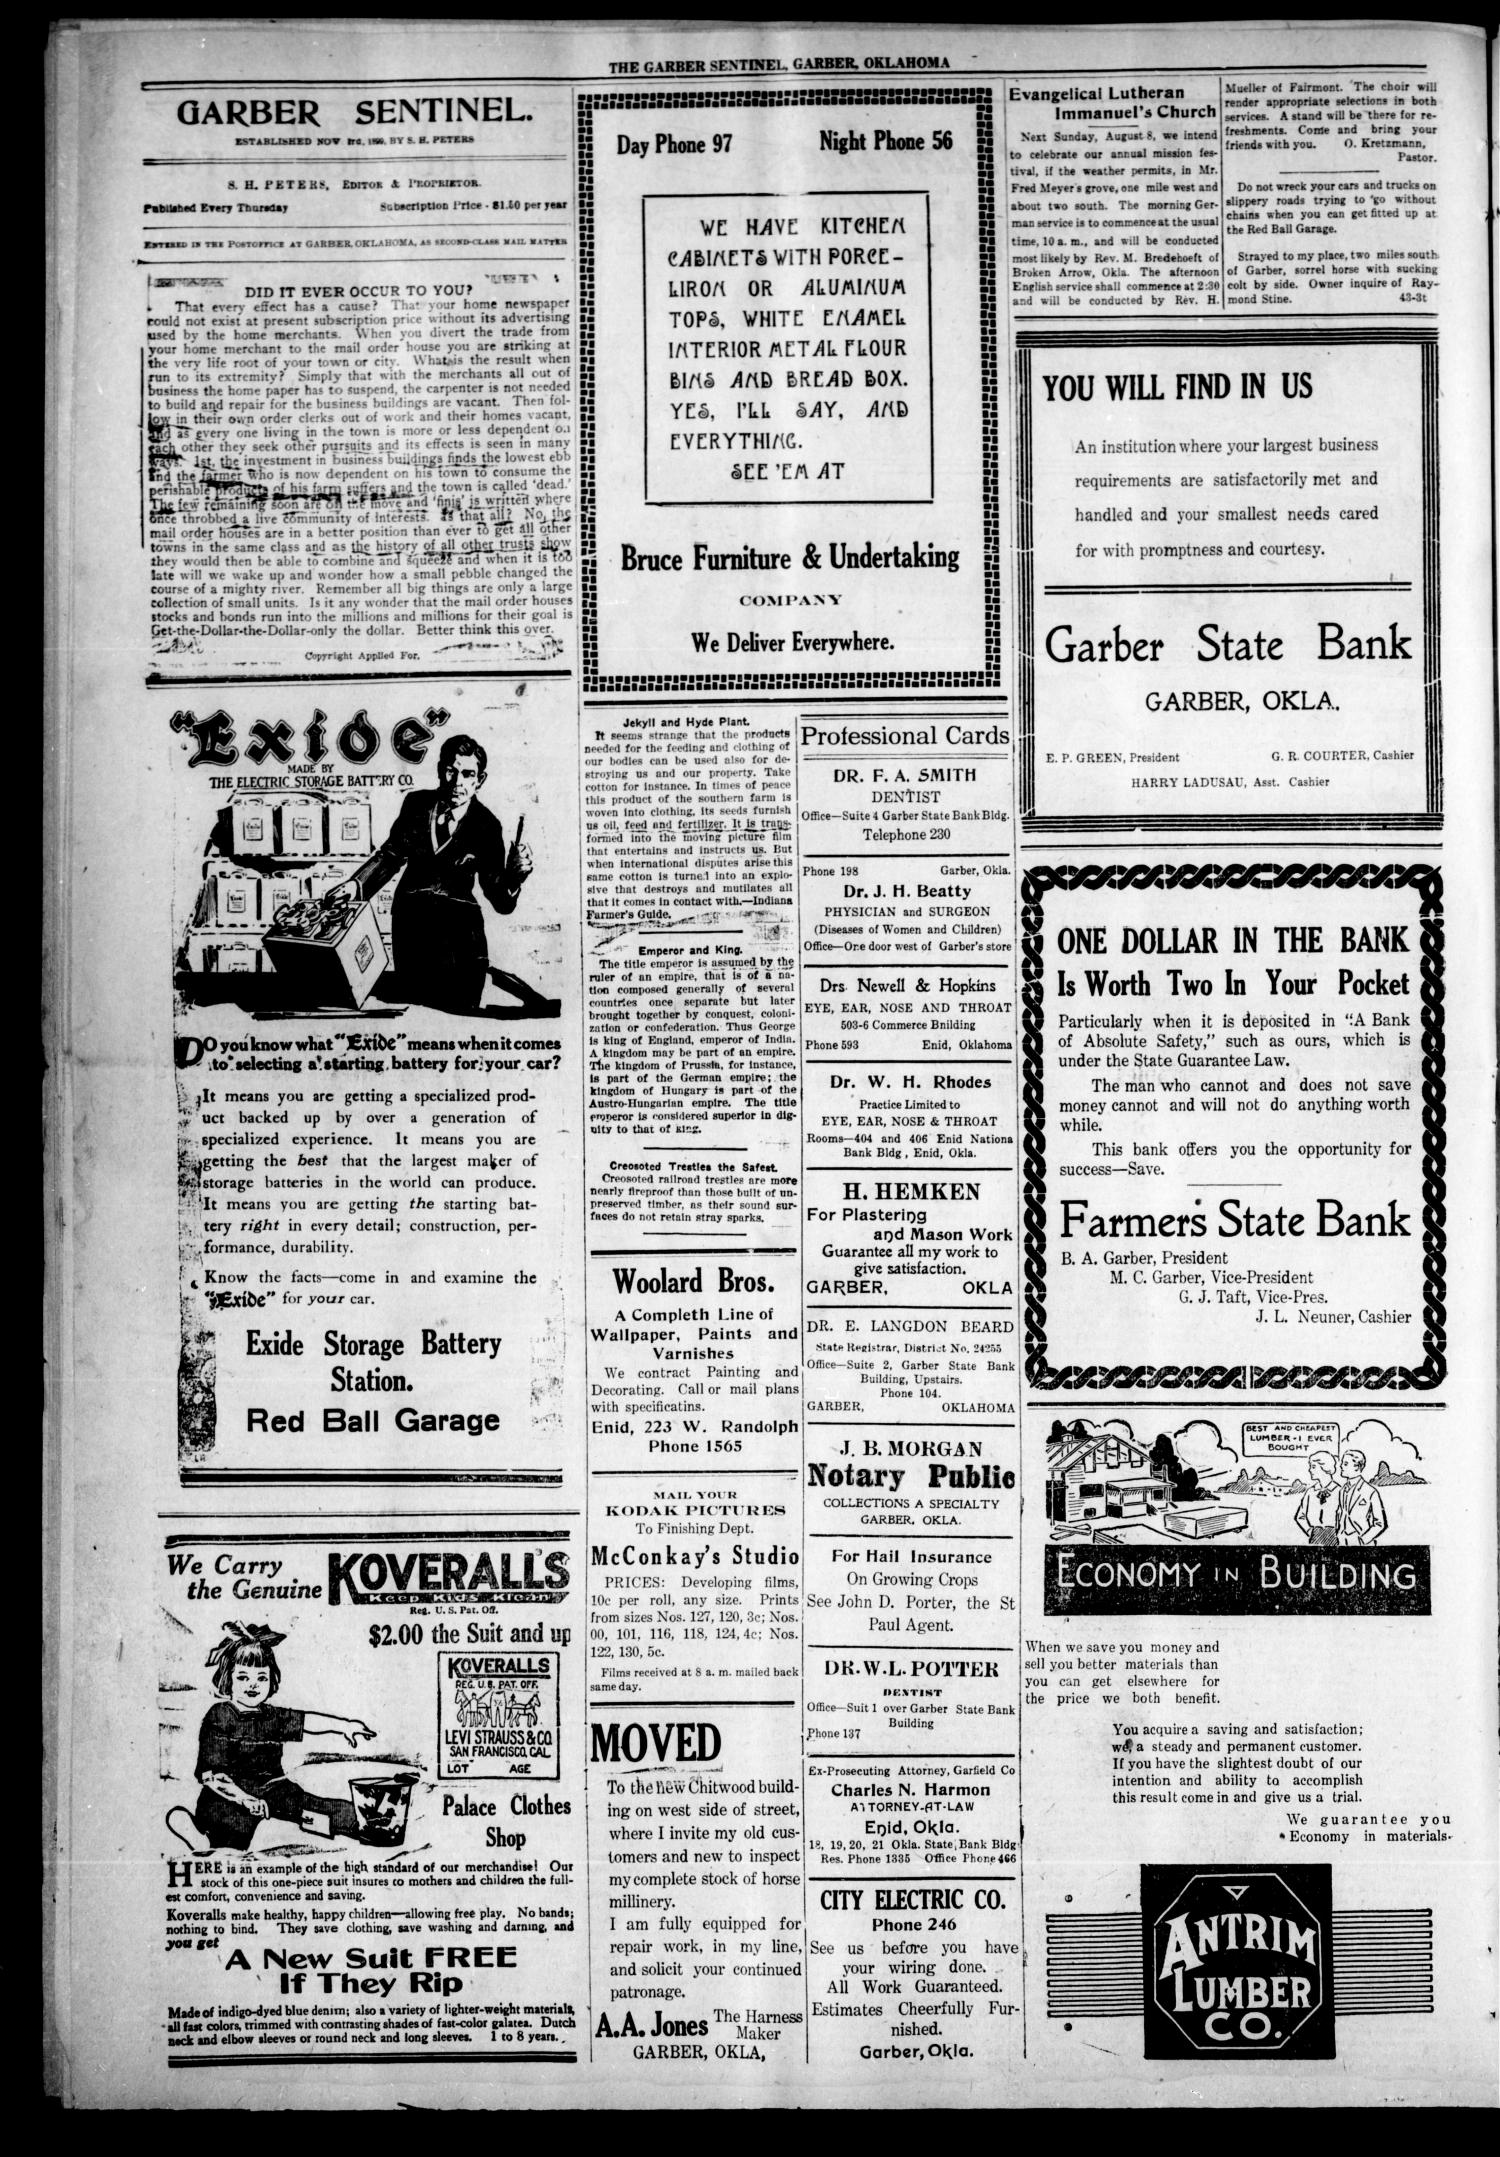 Garber Sentinel. (Garber, Okla.), Vol. 21, No. 45, Ed. 1 Thursday, August 5, 1920                                                                                                      [Sequence #]: 4 of 8